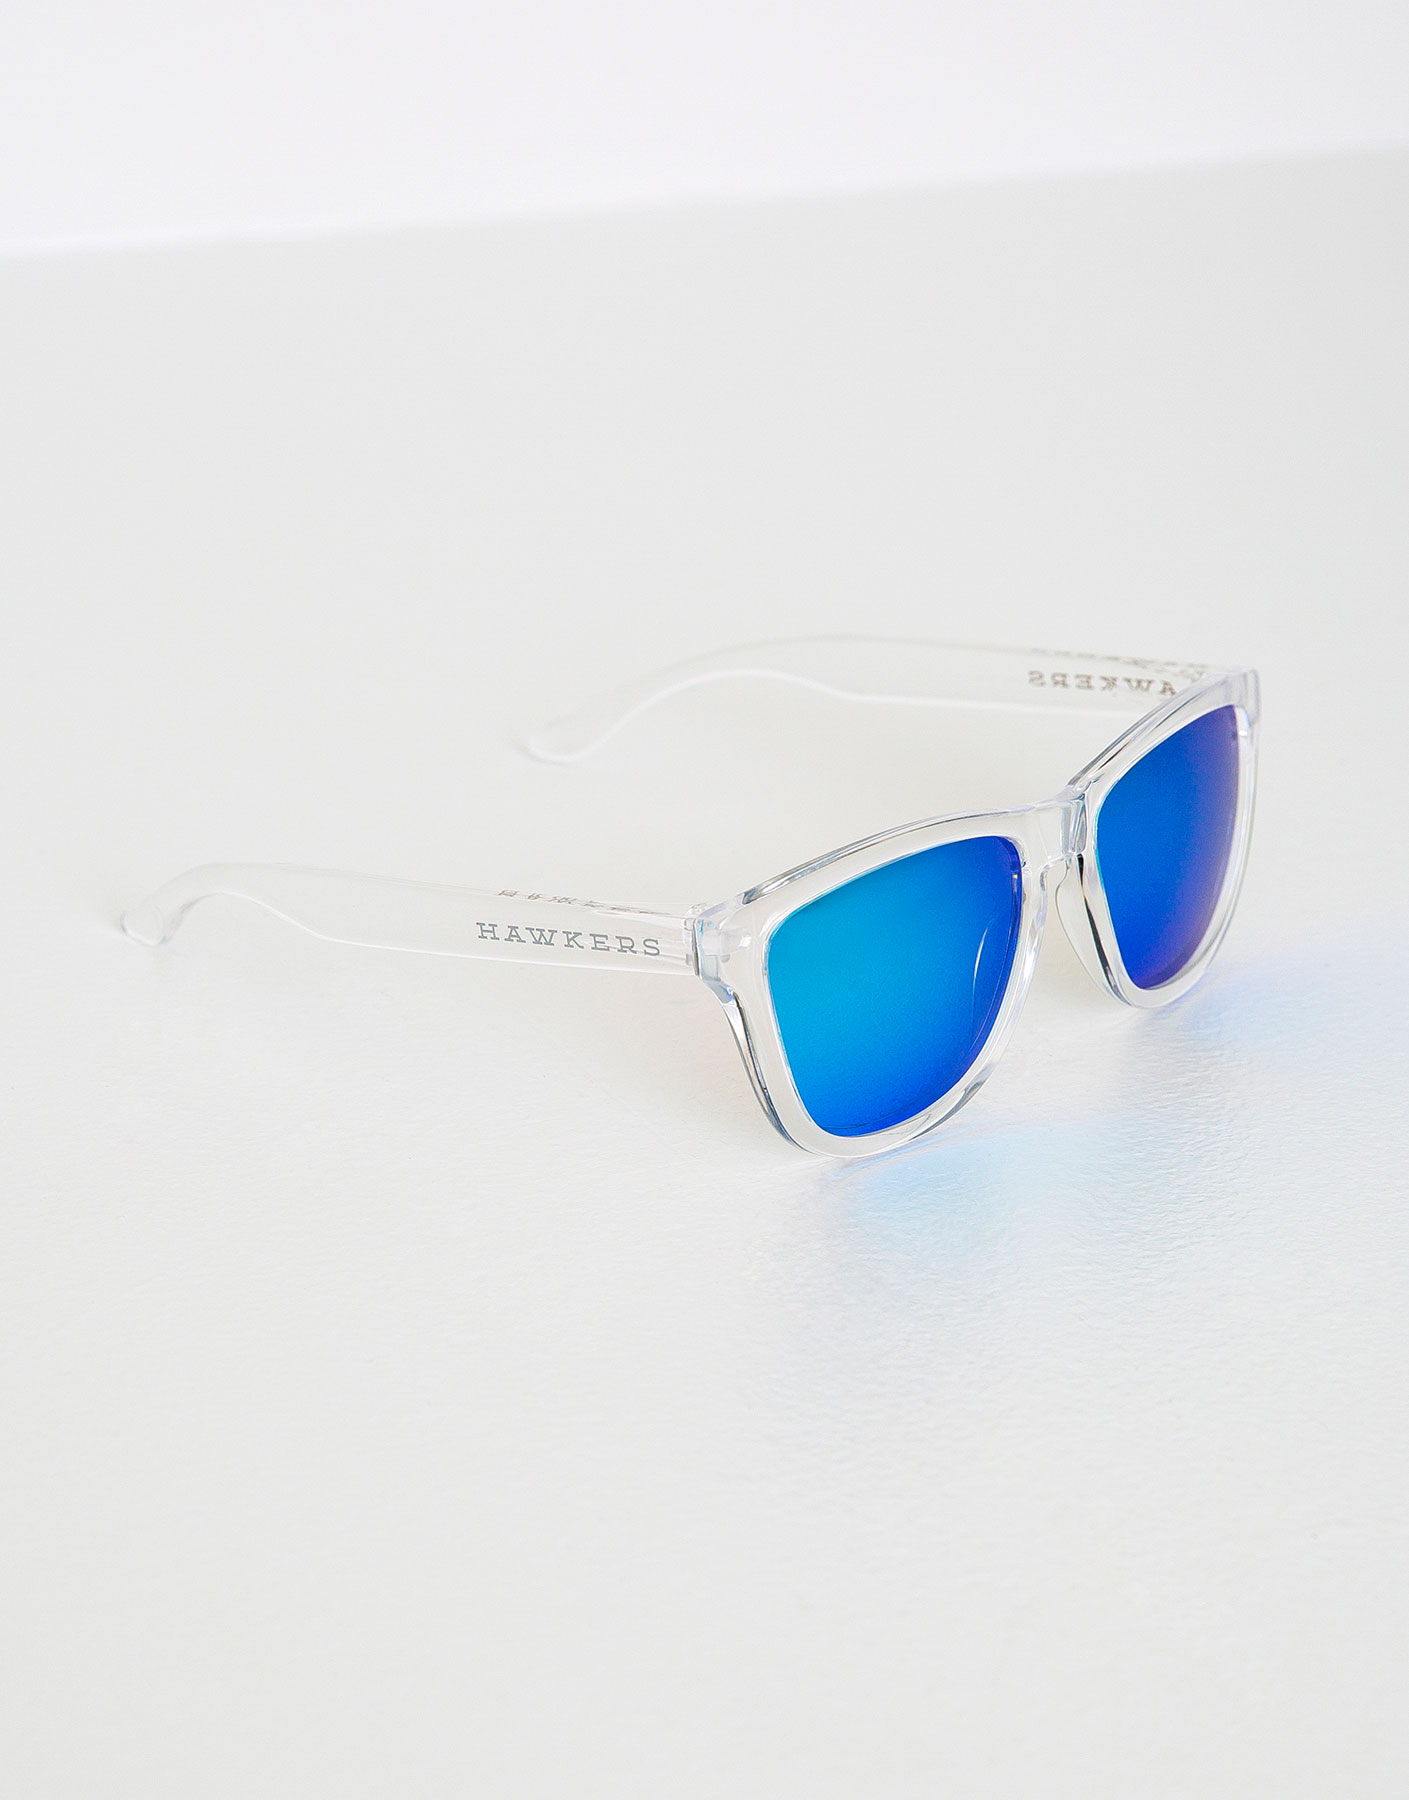 Lentes de sol hawkers air clear blue one